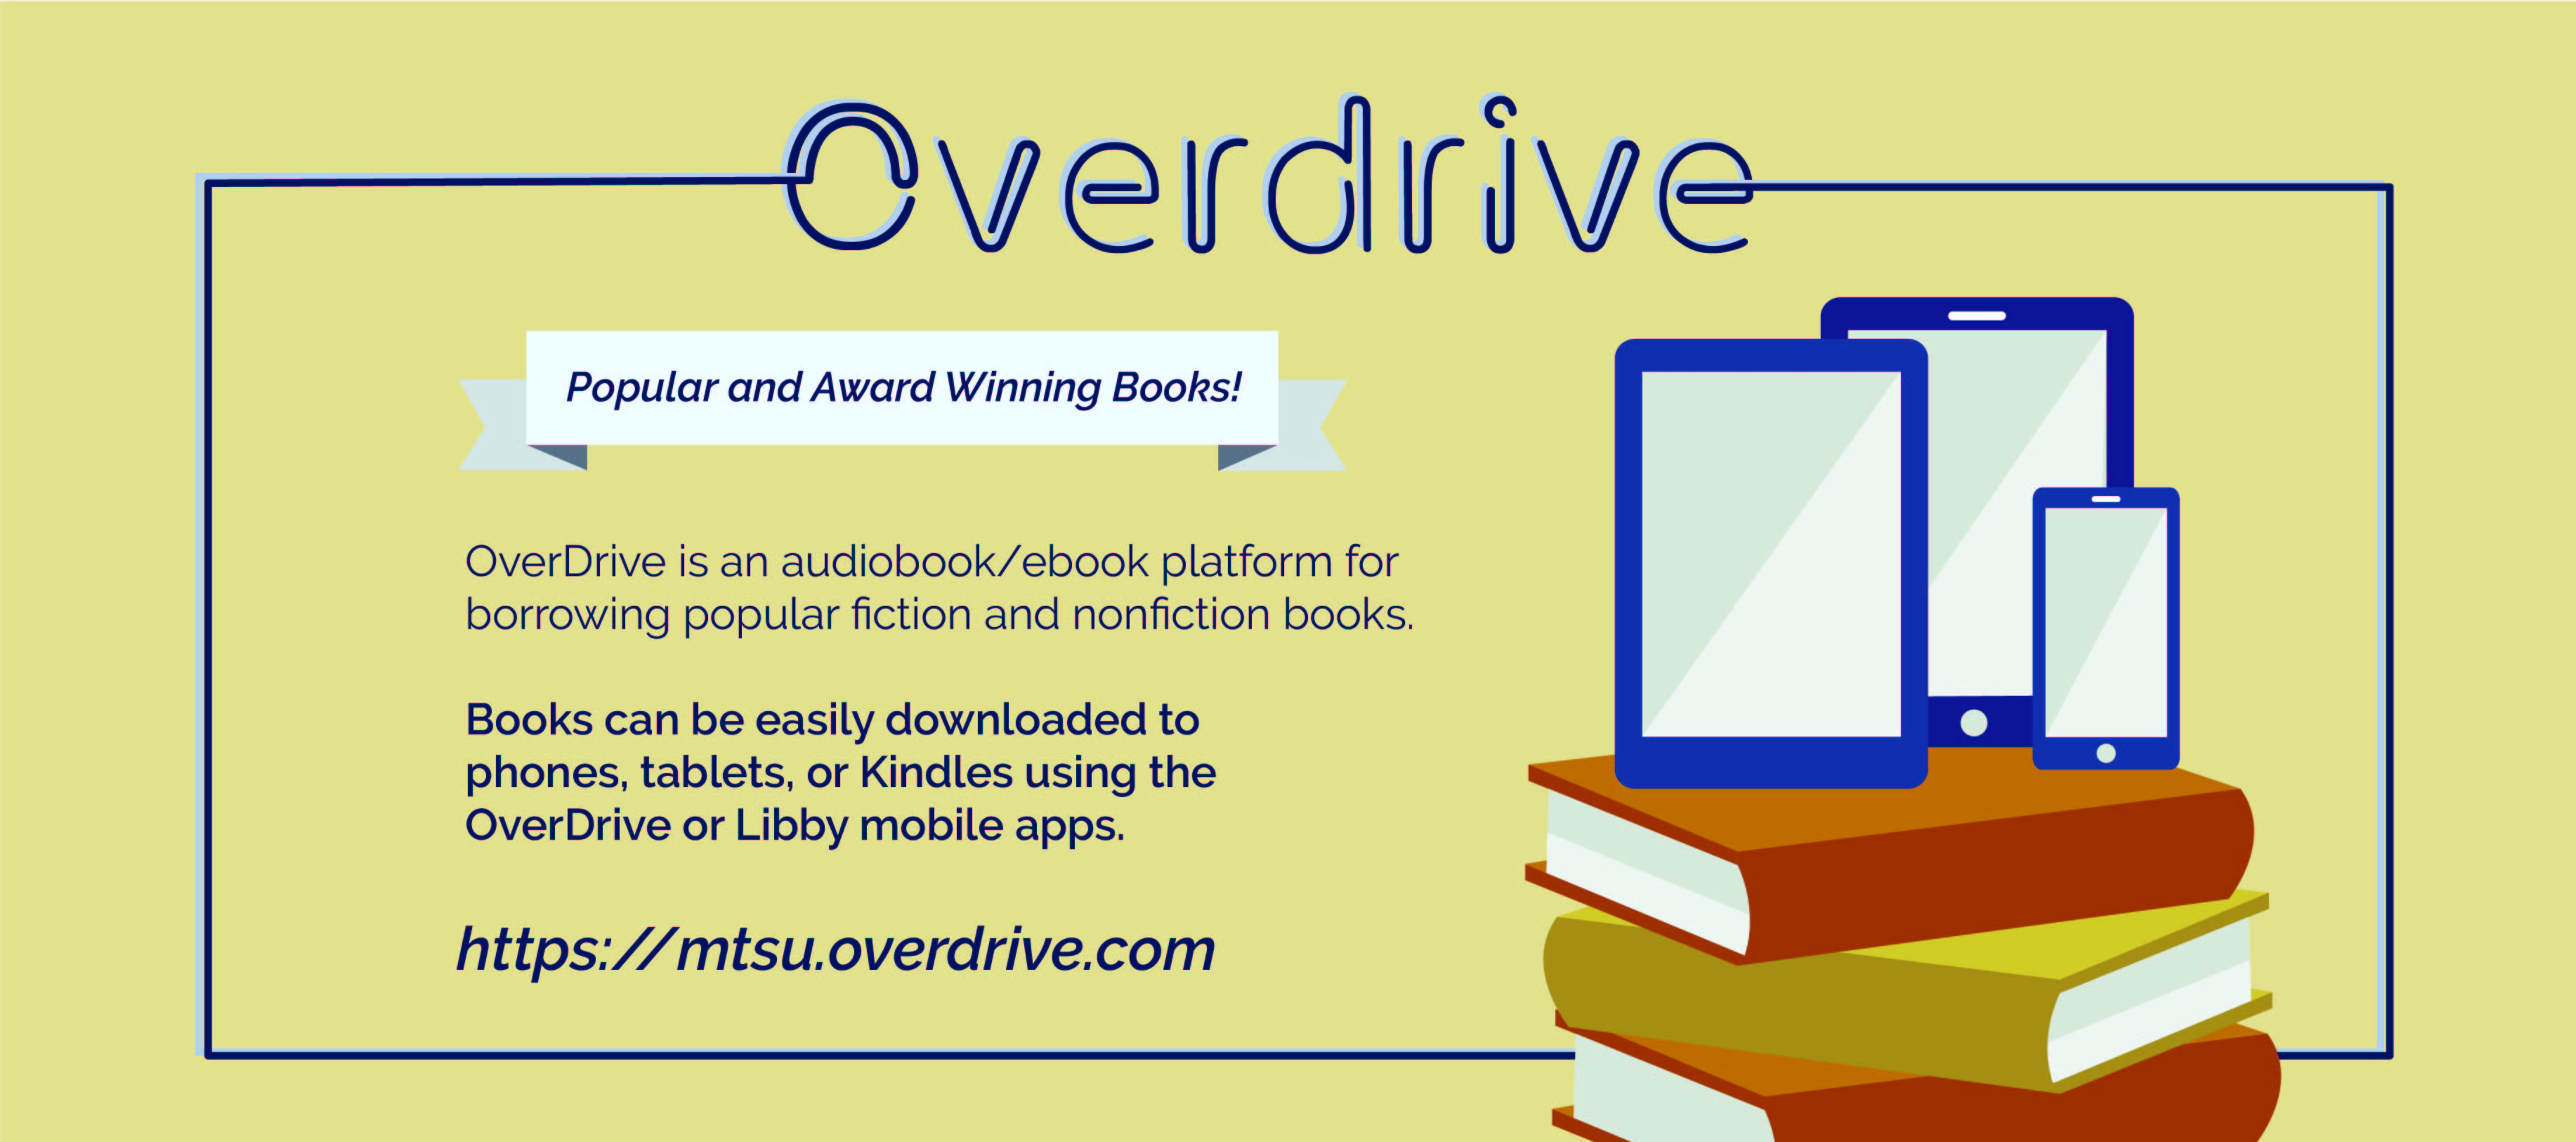 Overdrive at MTSU